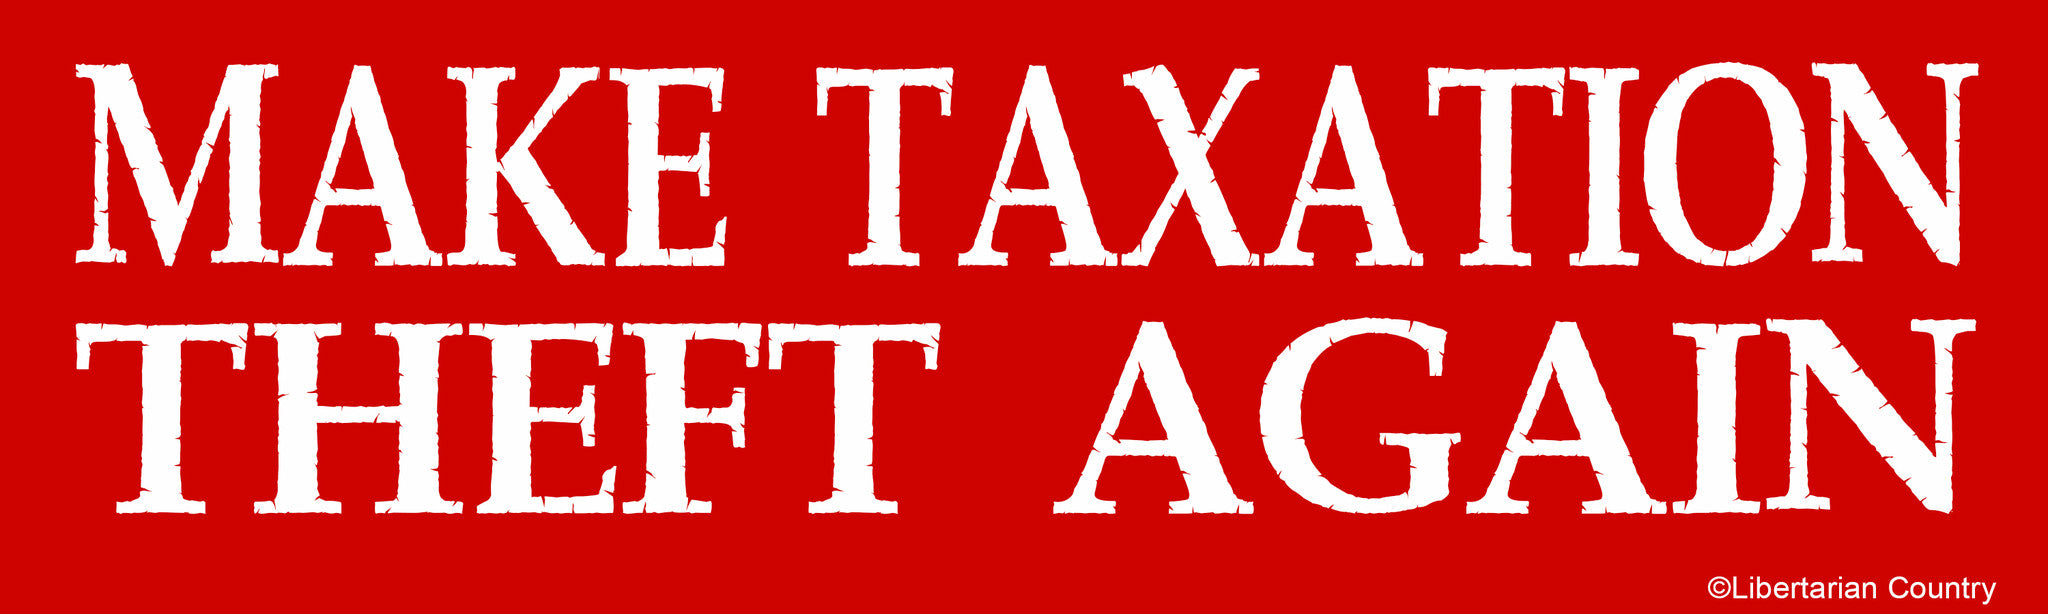 Make taxation theft again bumper sticker by libertarian country